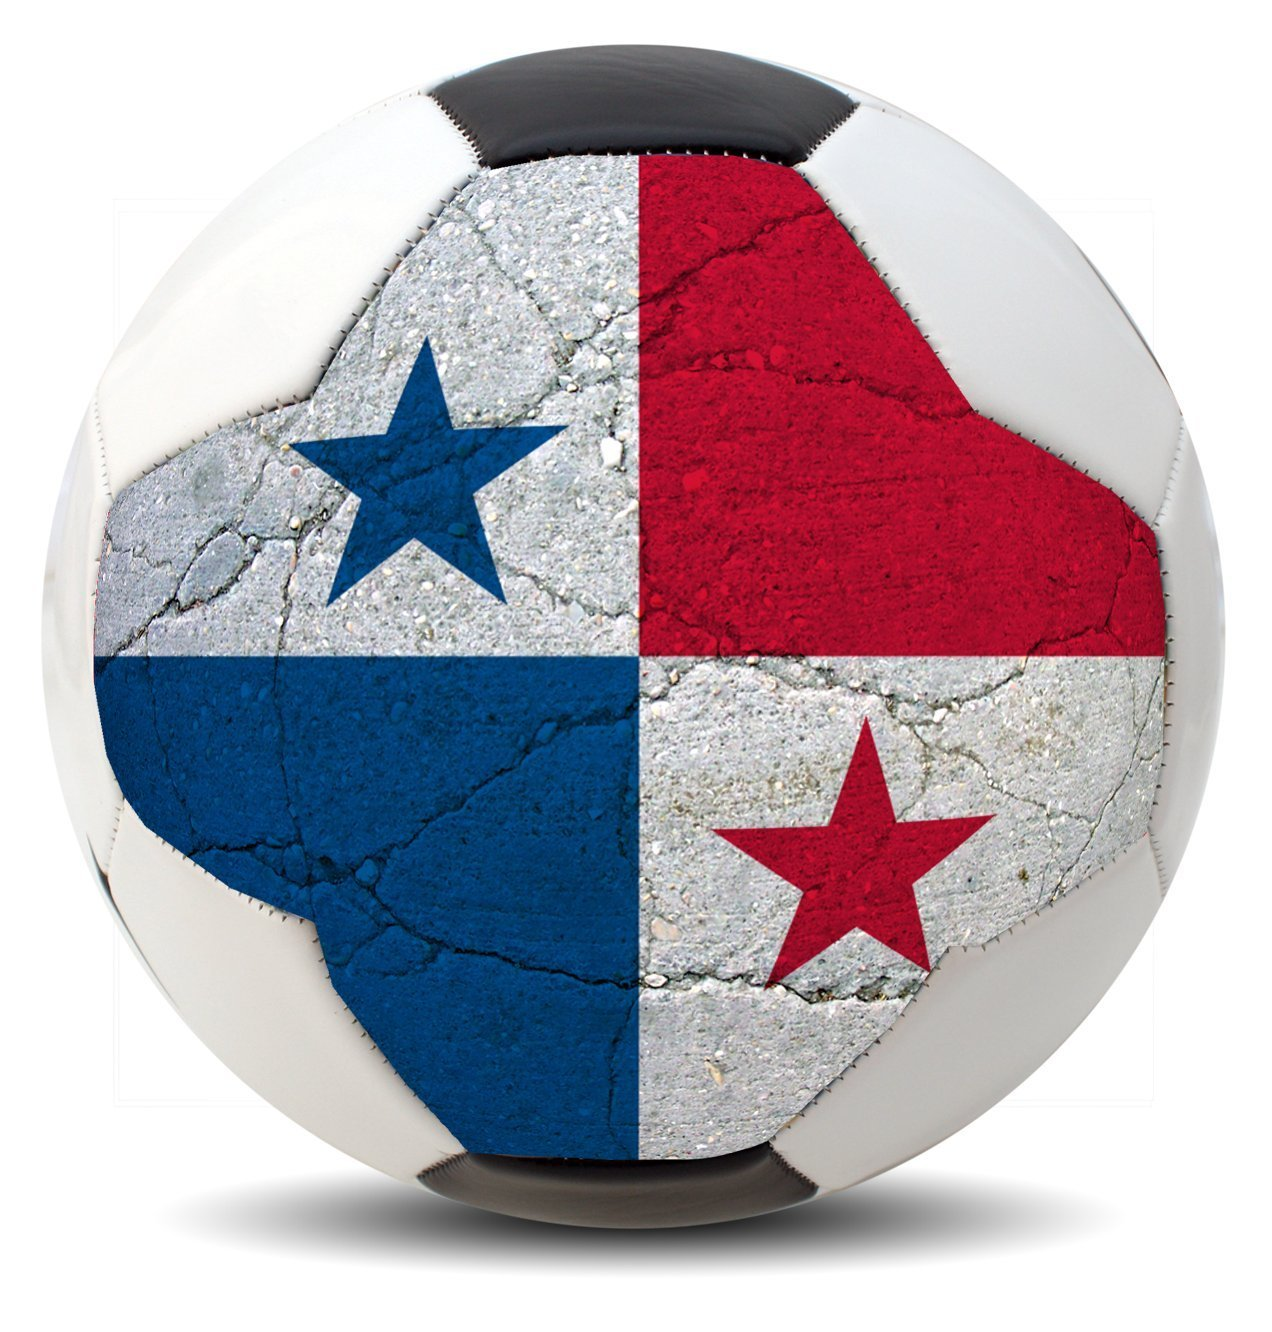 baf9ab773 Get Quotations · Customized Country Soccer balls International COPA World  Cup Euro League (USA